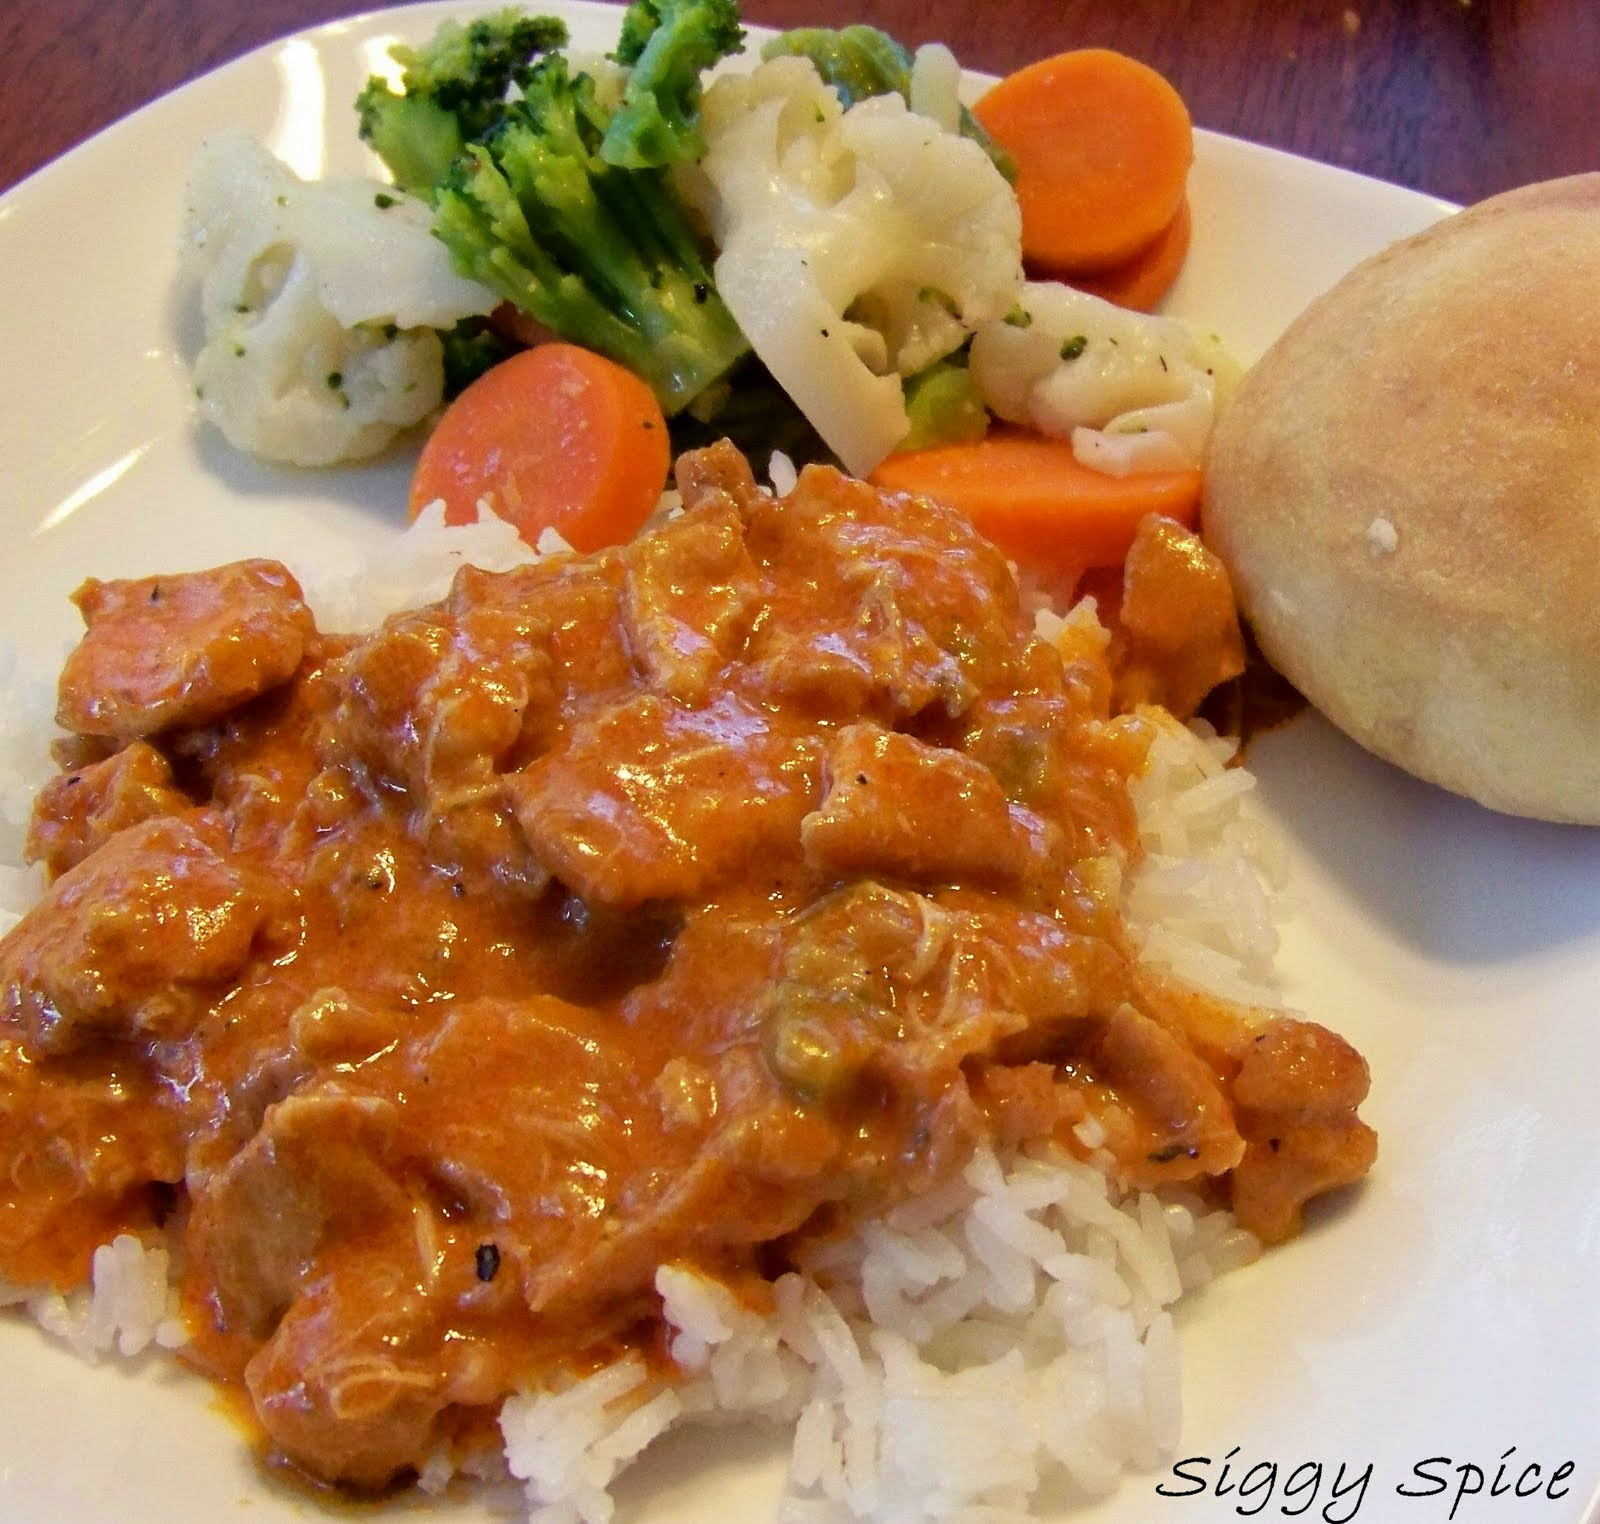 Siggy Spice: German Chicken Paprikash